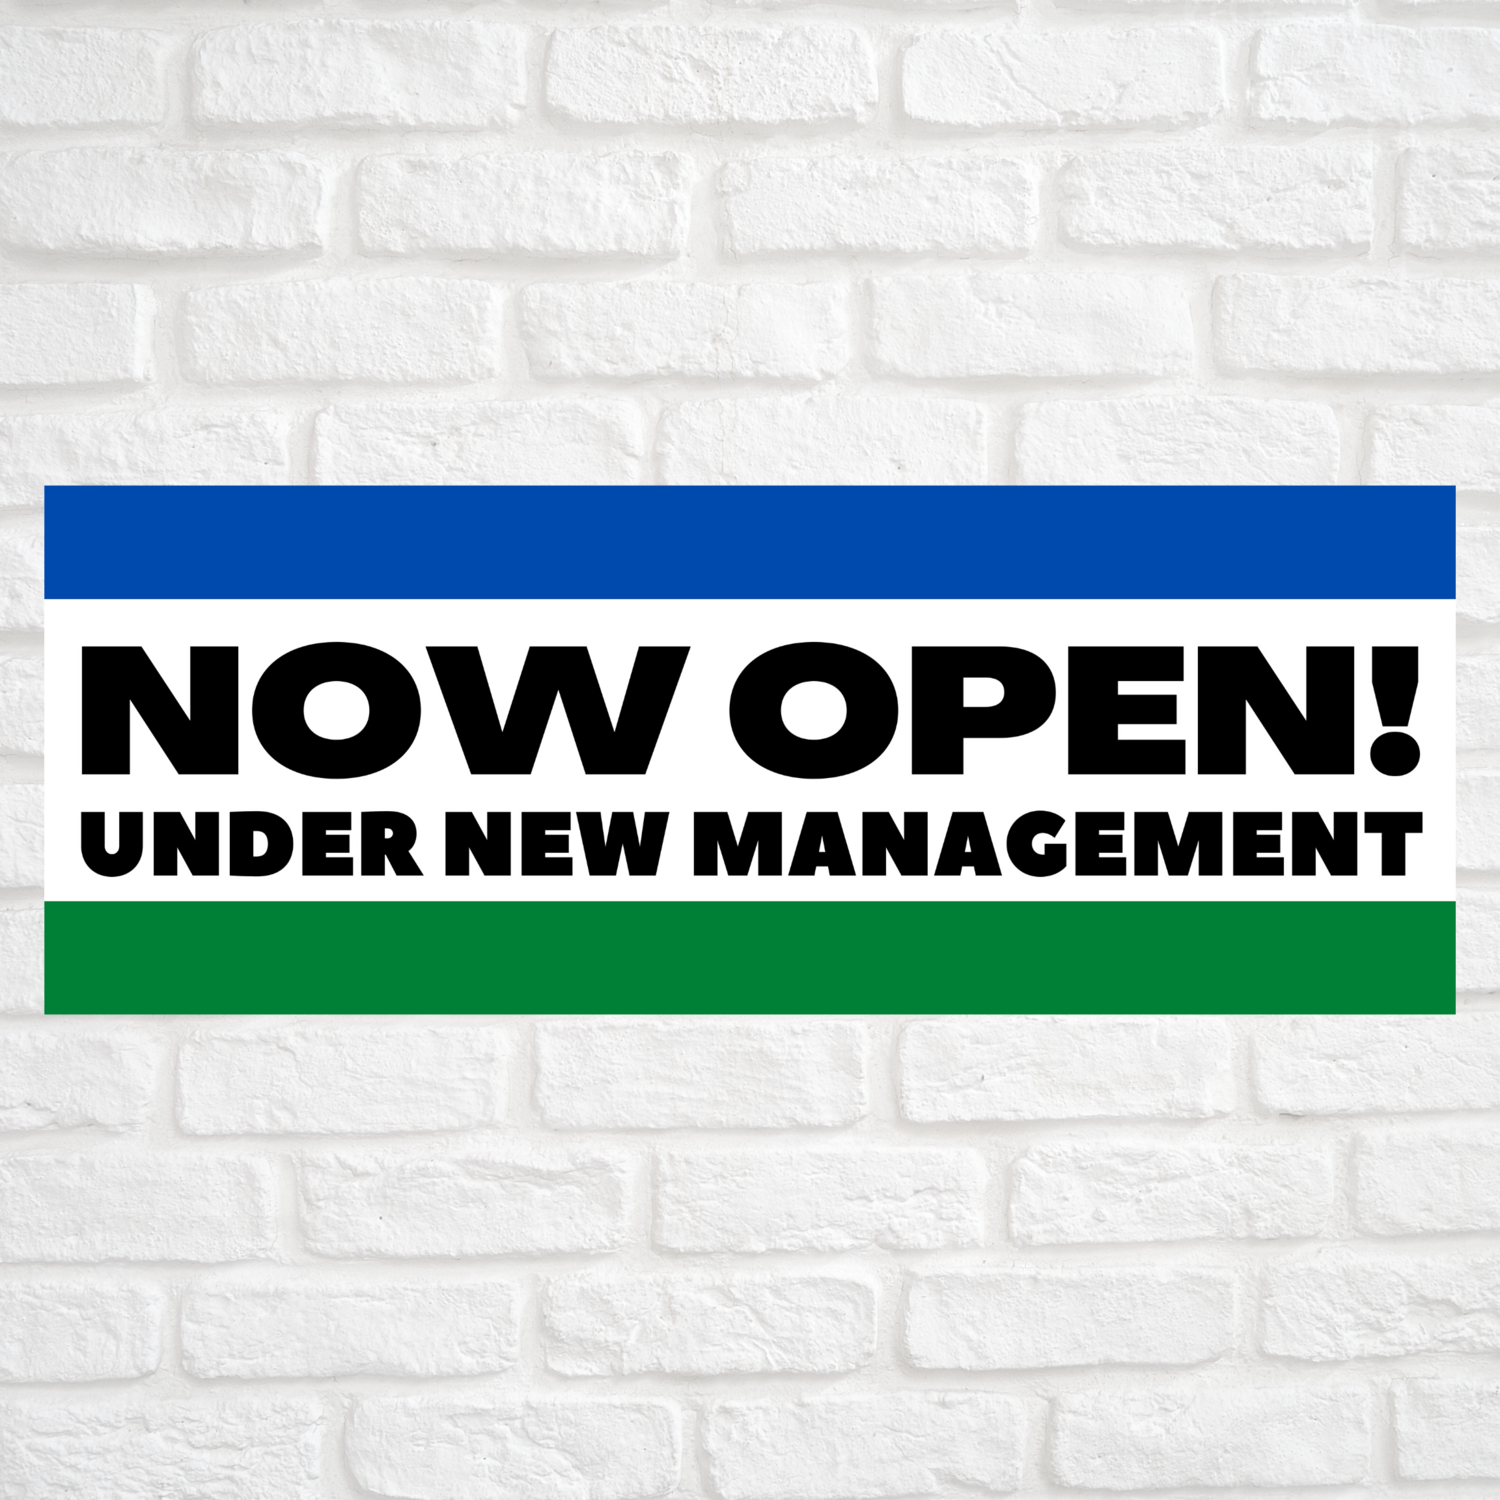 Now Open! Under New Management Blue/Green